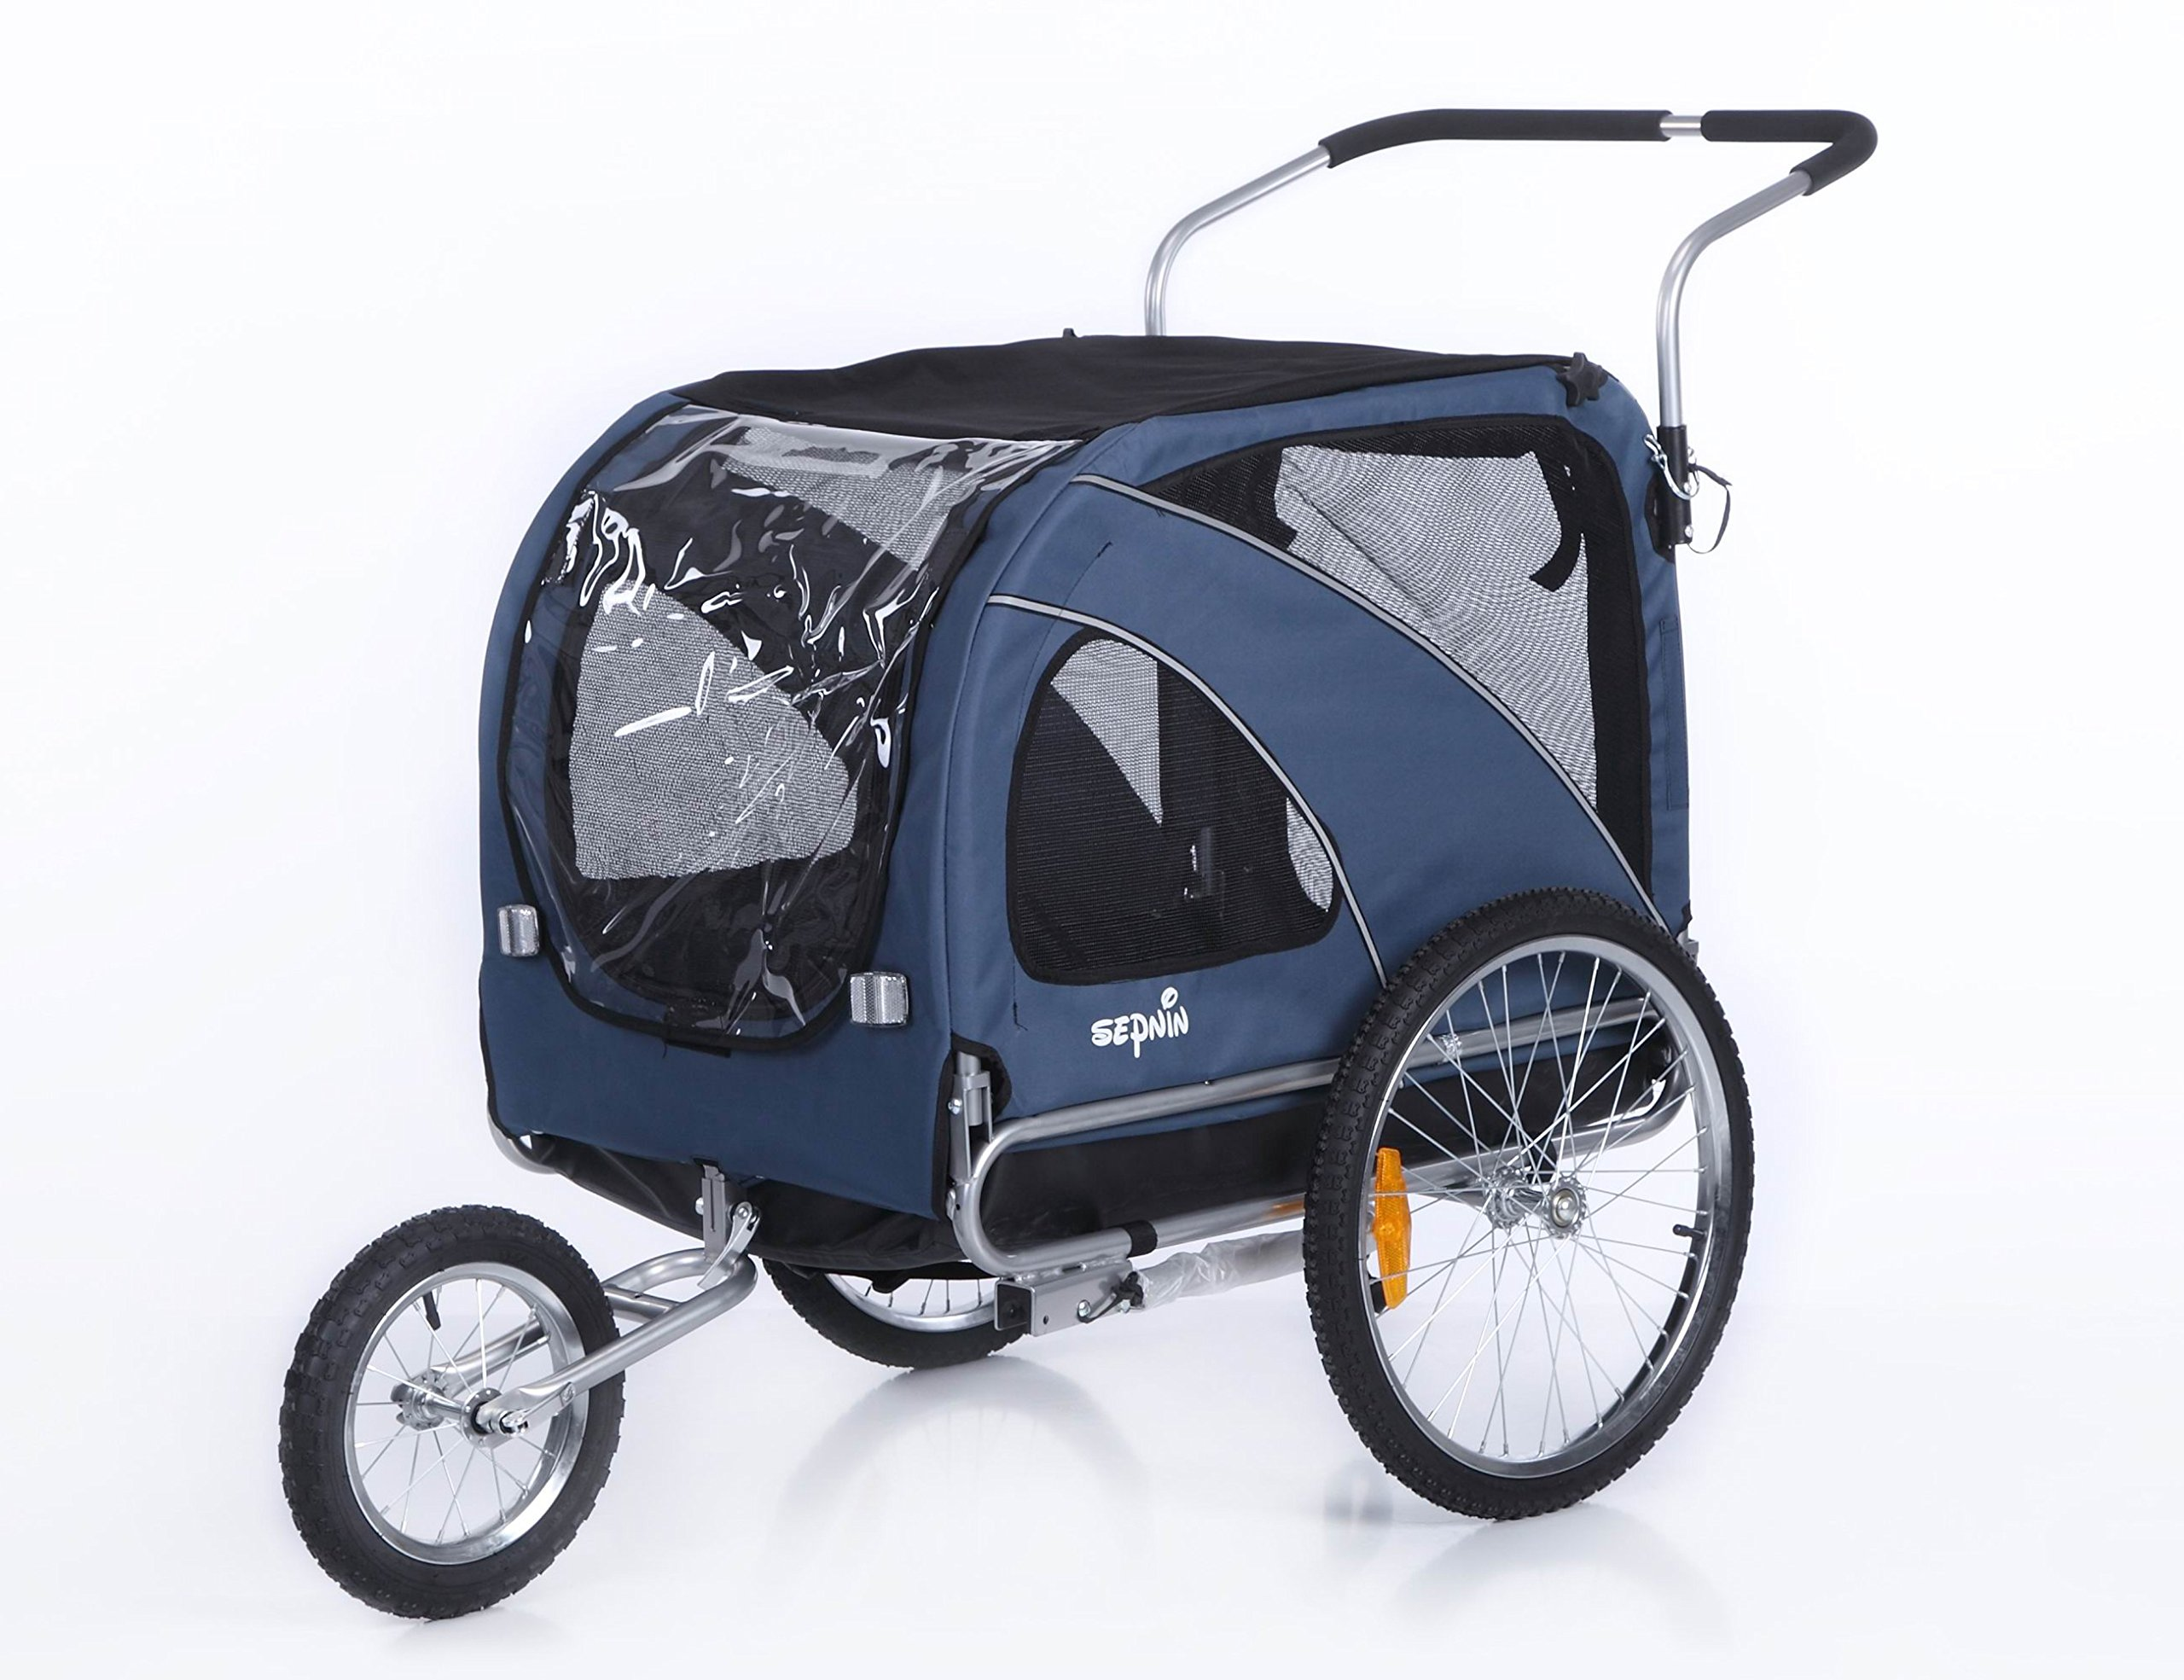 Sepnine 2 in1 large pet dog bike trailer bicycle trailer and stroller jogger 10202 (Blue)